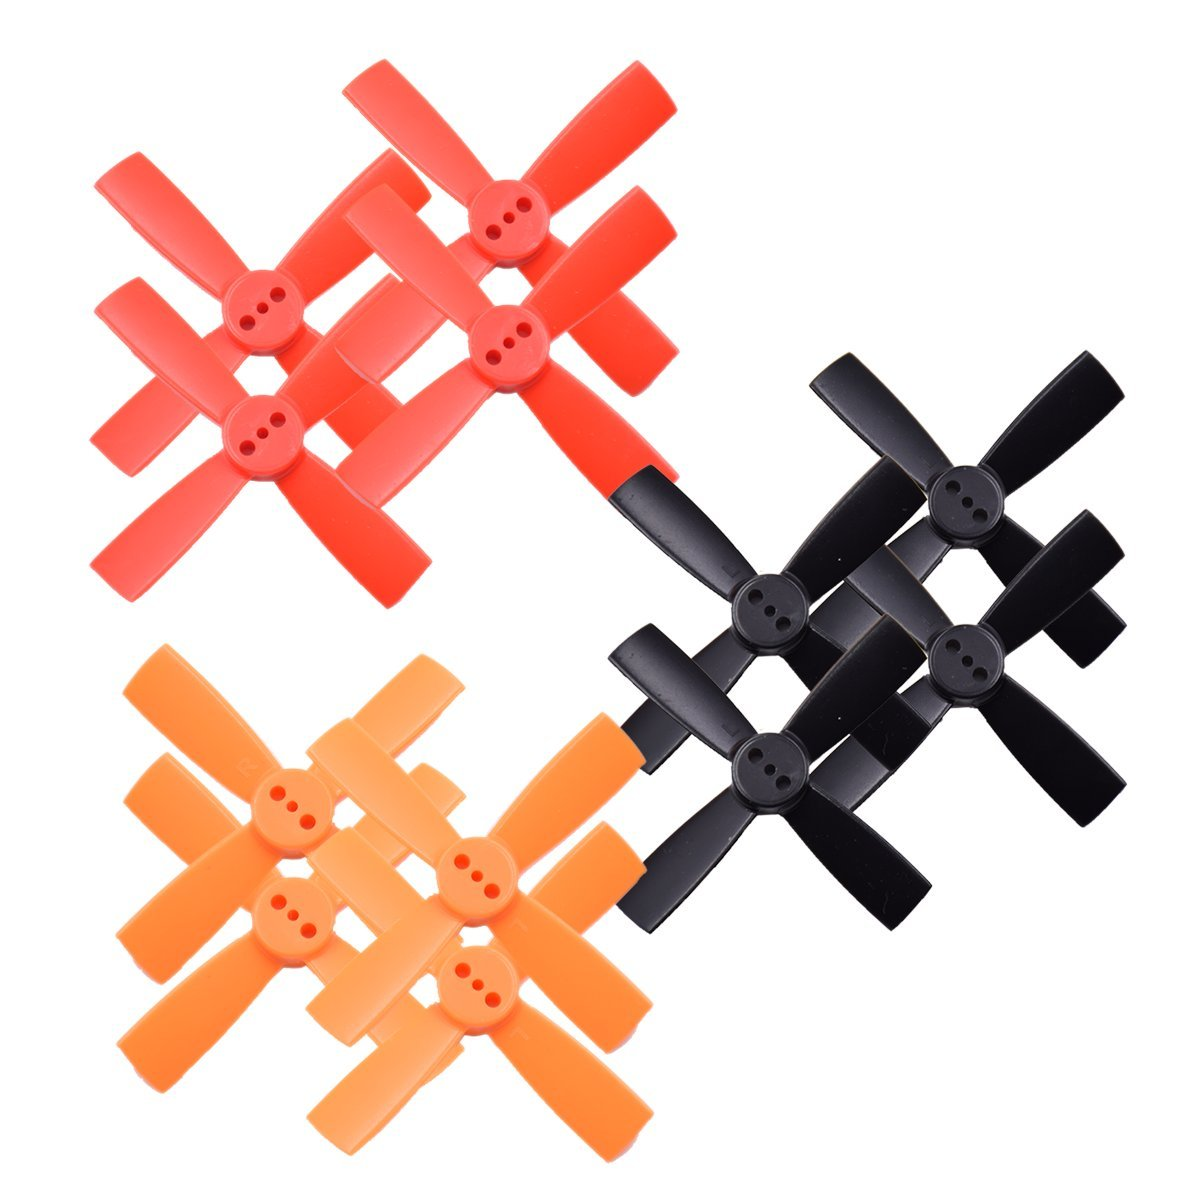 BETAFPV 3 Sets 2035 4-Blade Propeller 50mm FPV Props for 80-110 FPV Racing Drone Multicopter